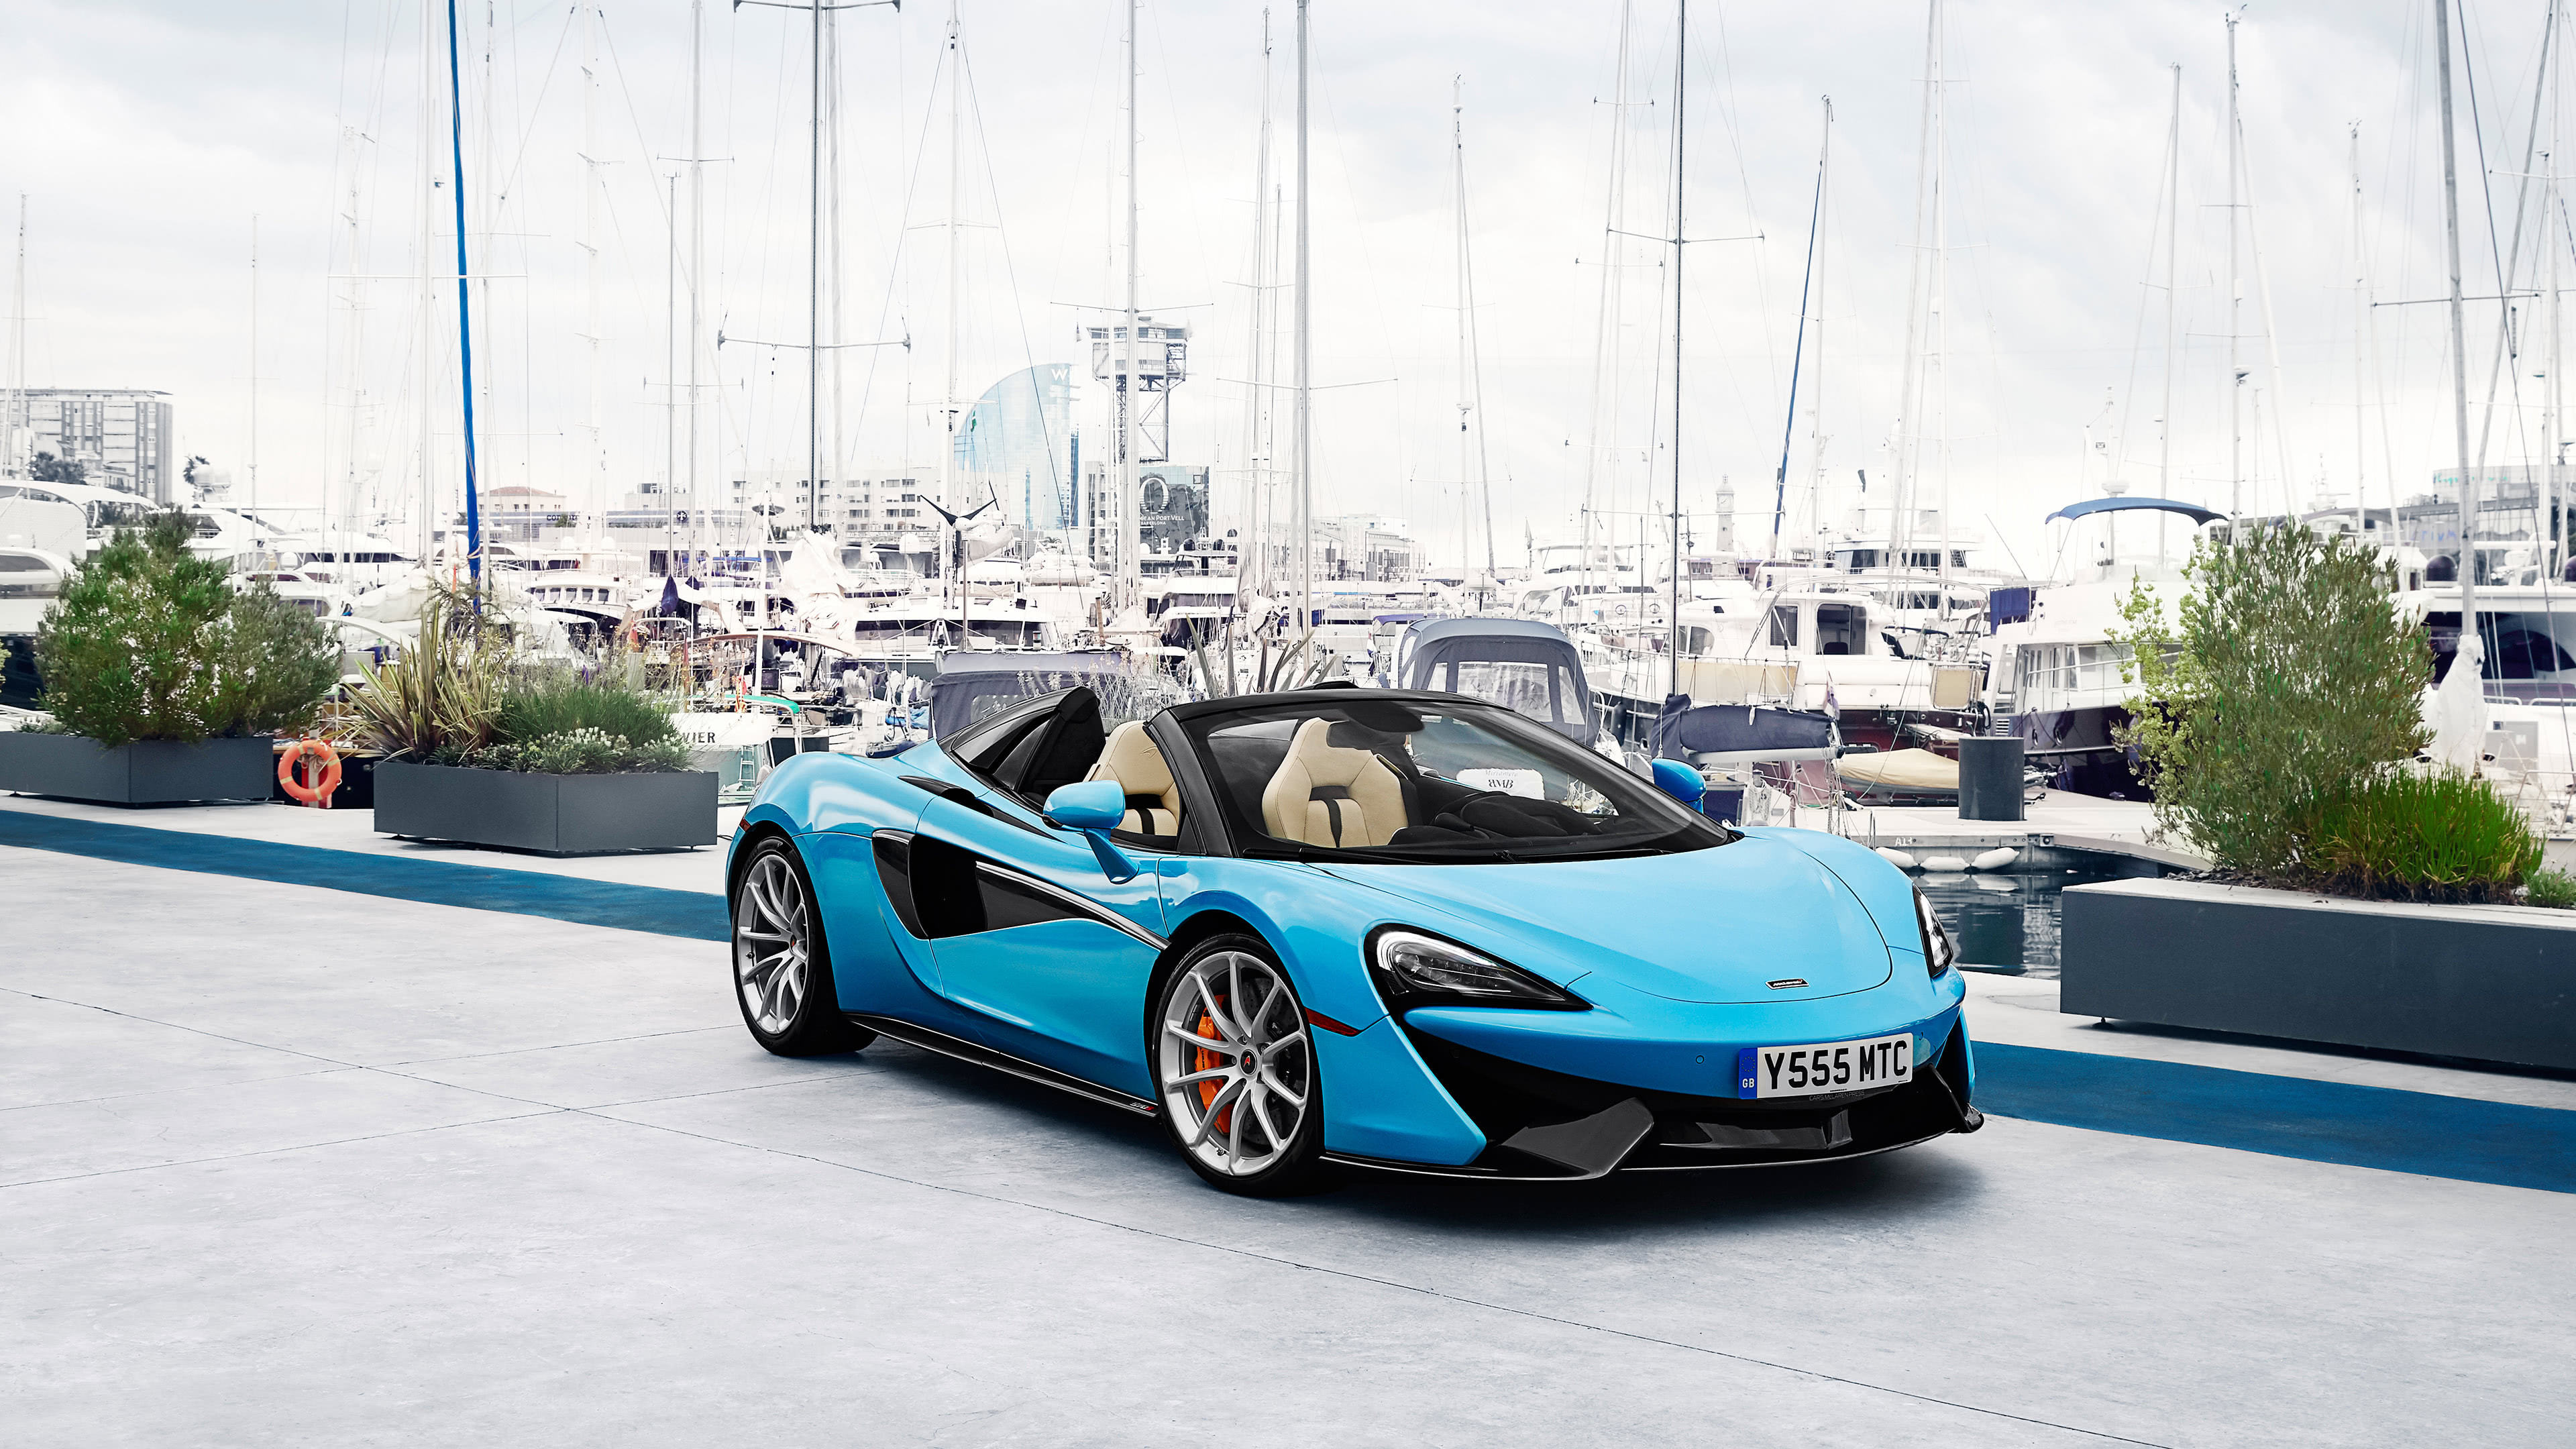 McLaren 570S Spider Blue UHD 4K Wallpaper Pixelz 3840x2160